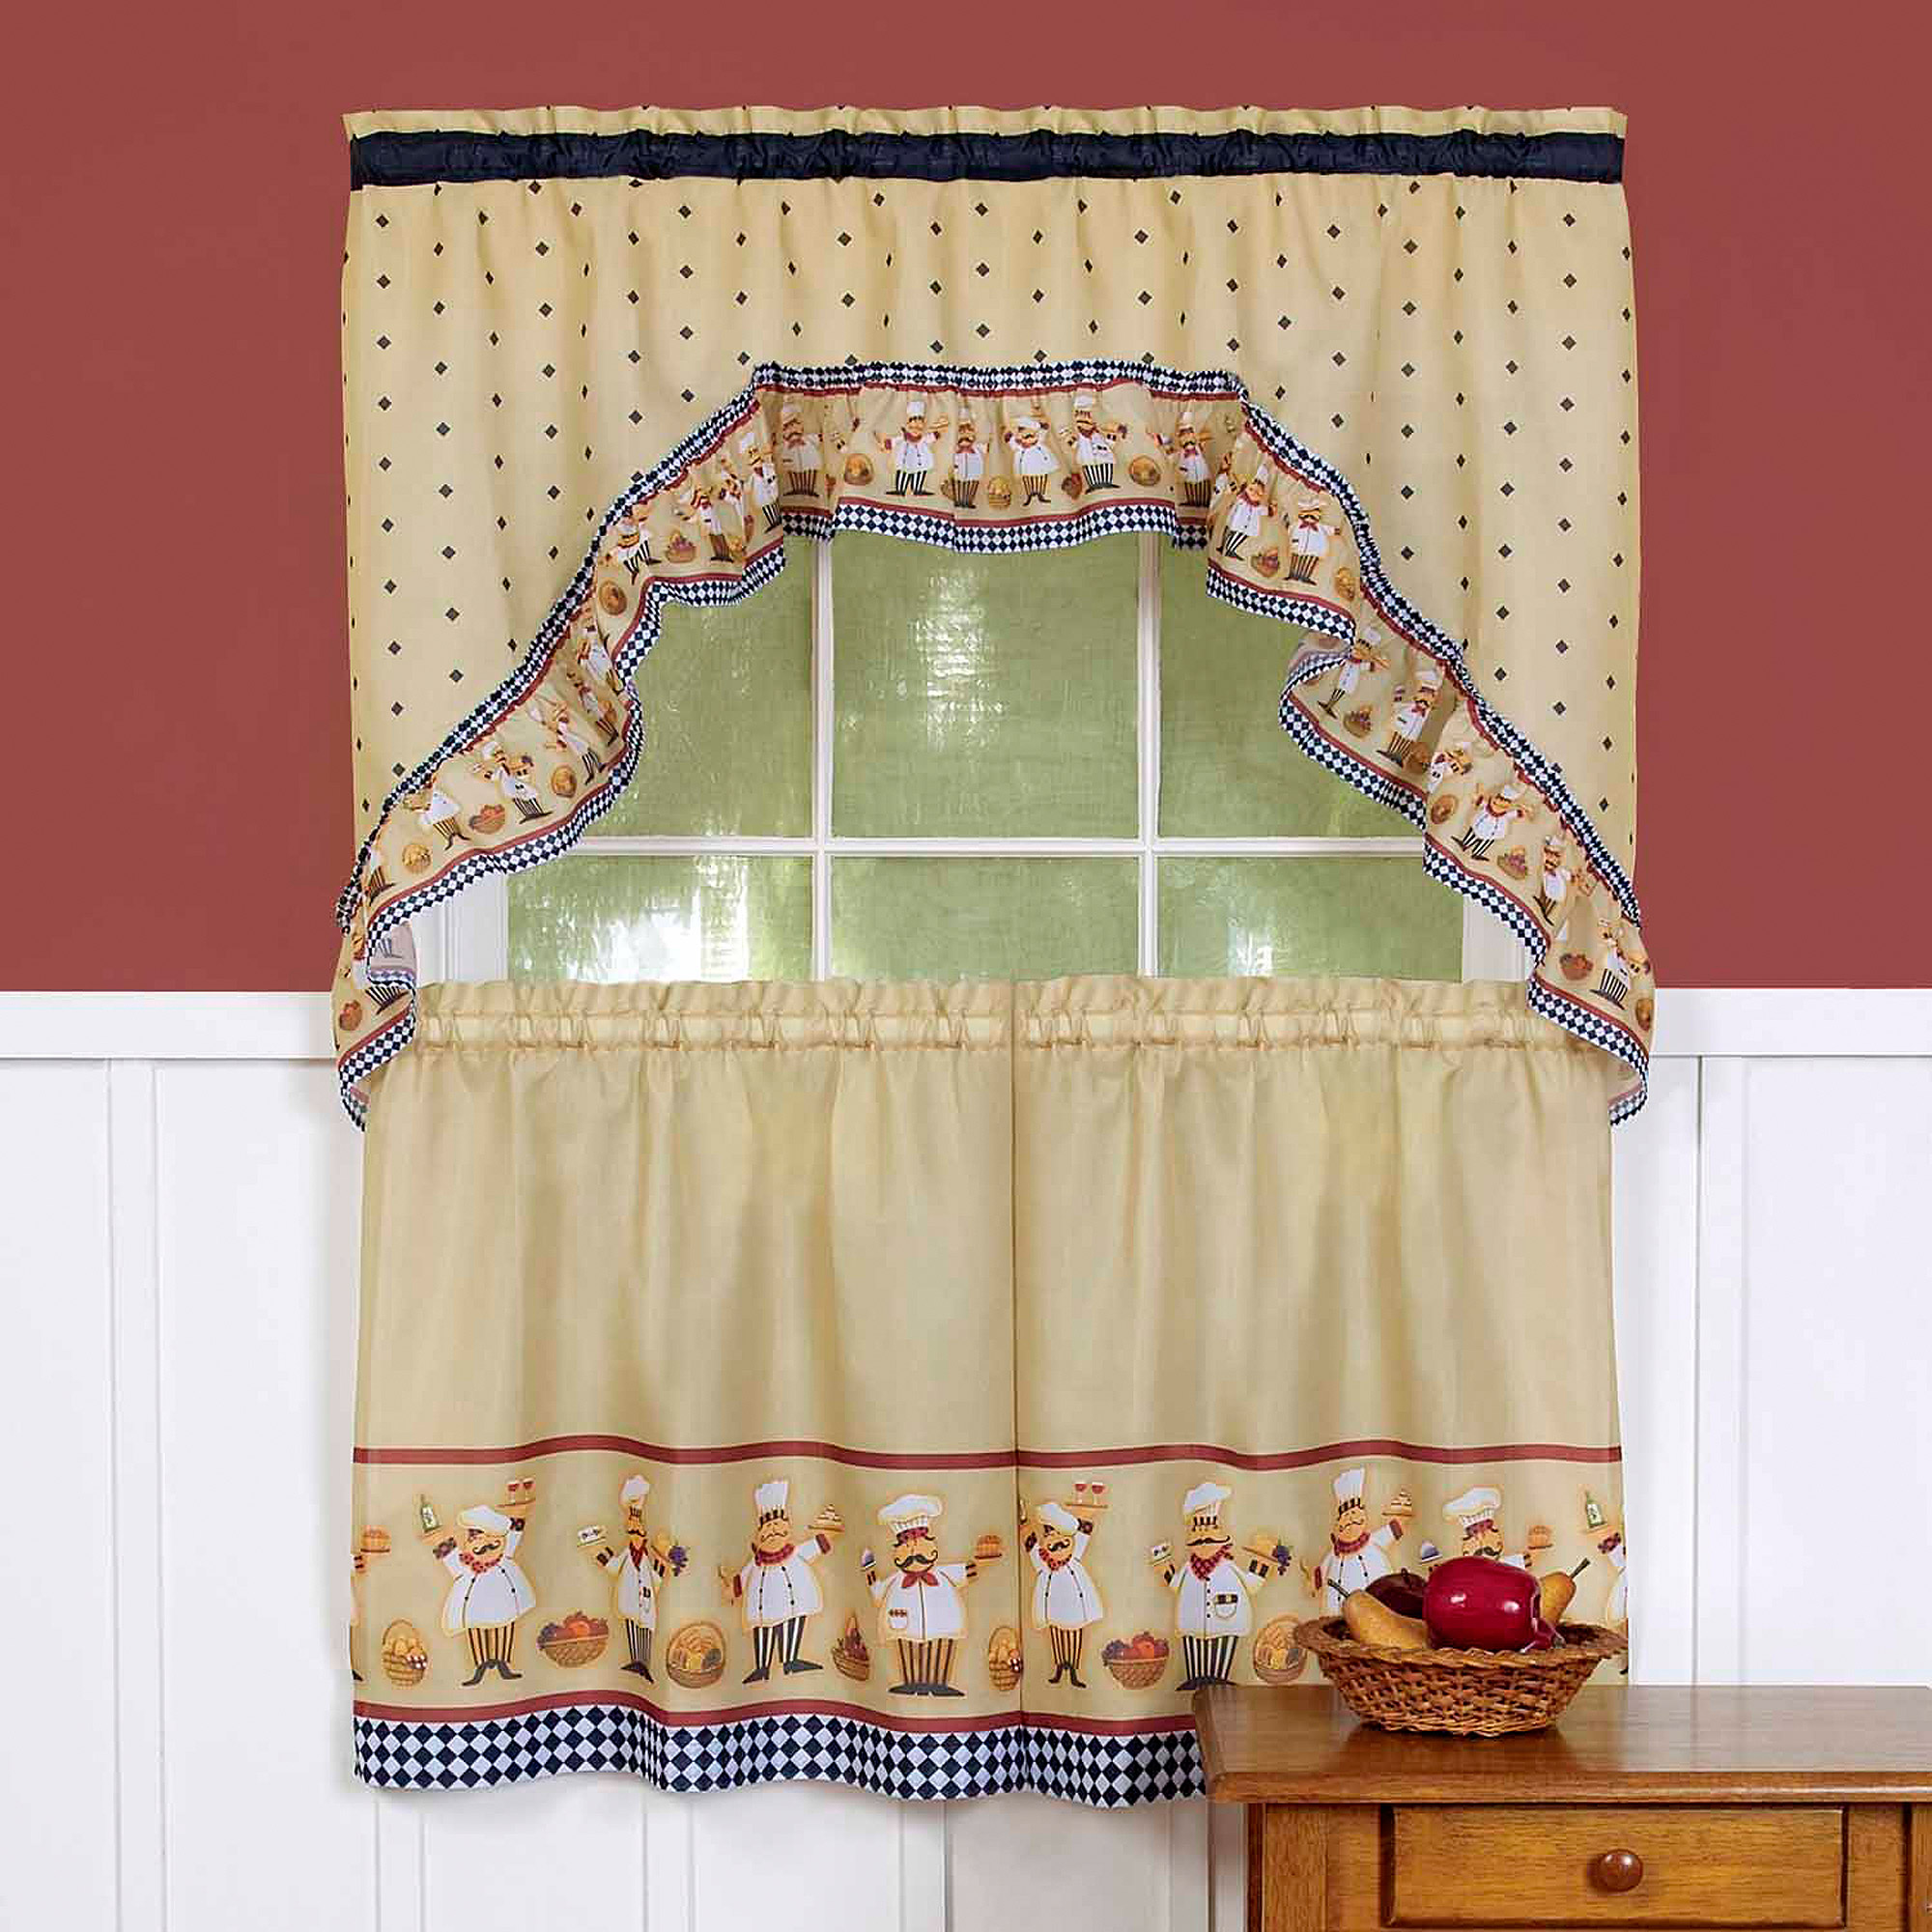 Cucina Kitchen Curtains